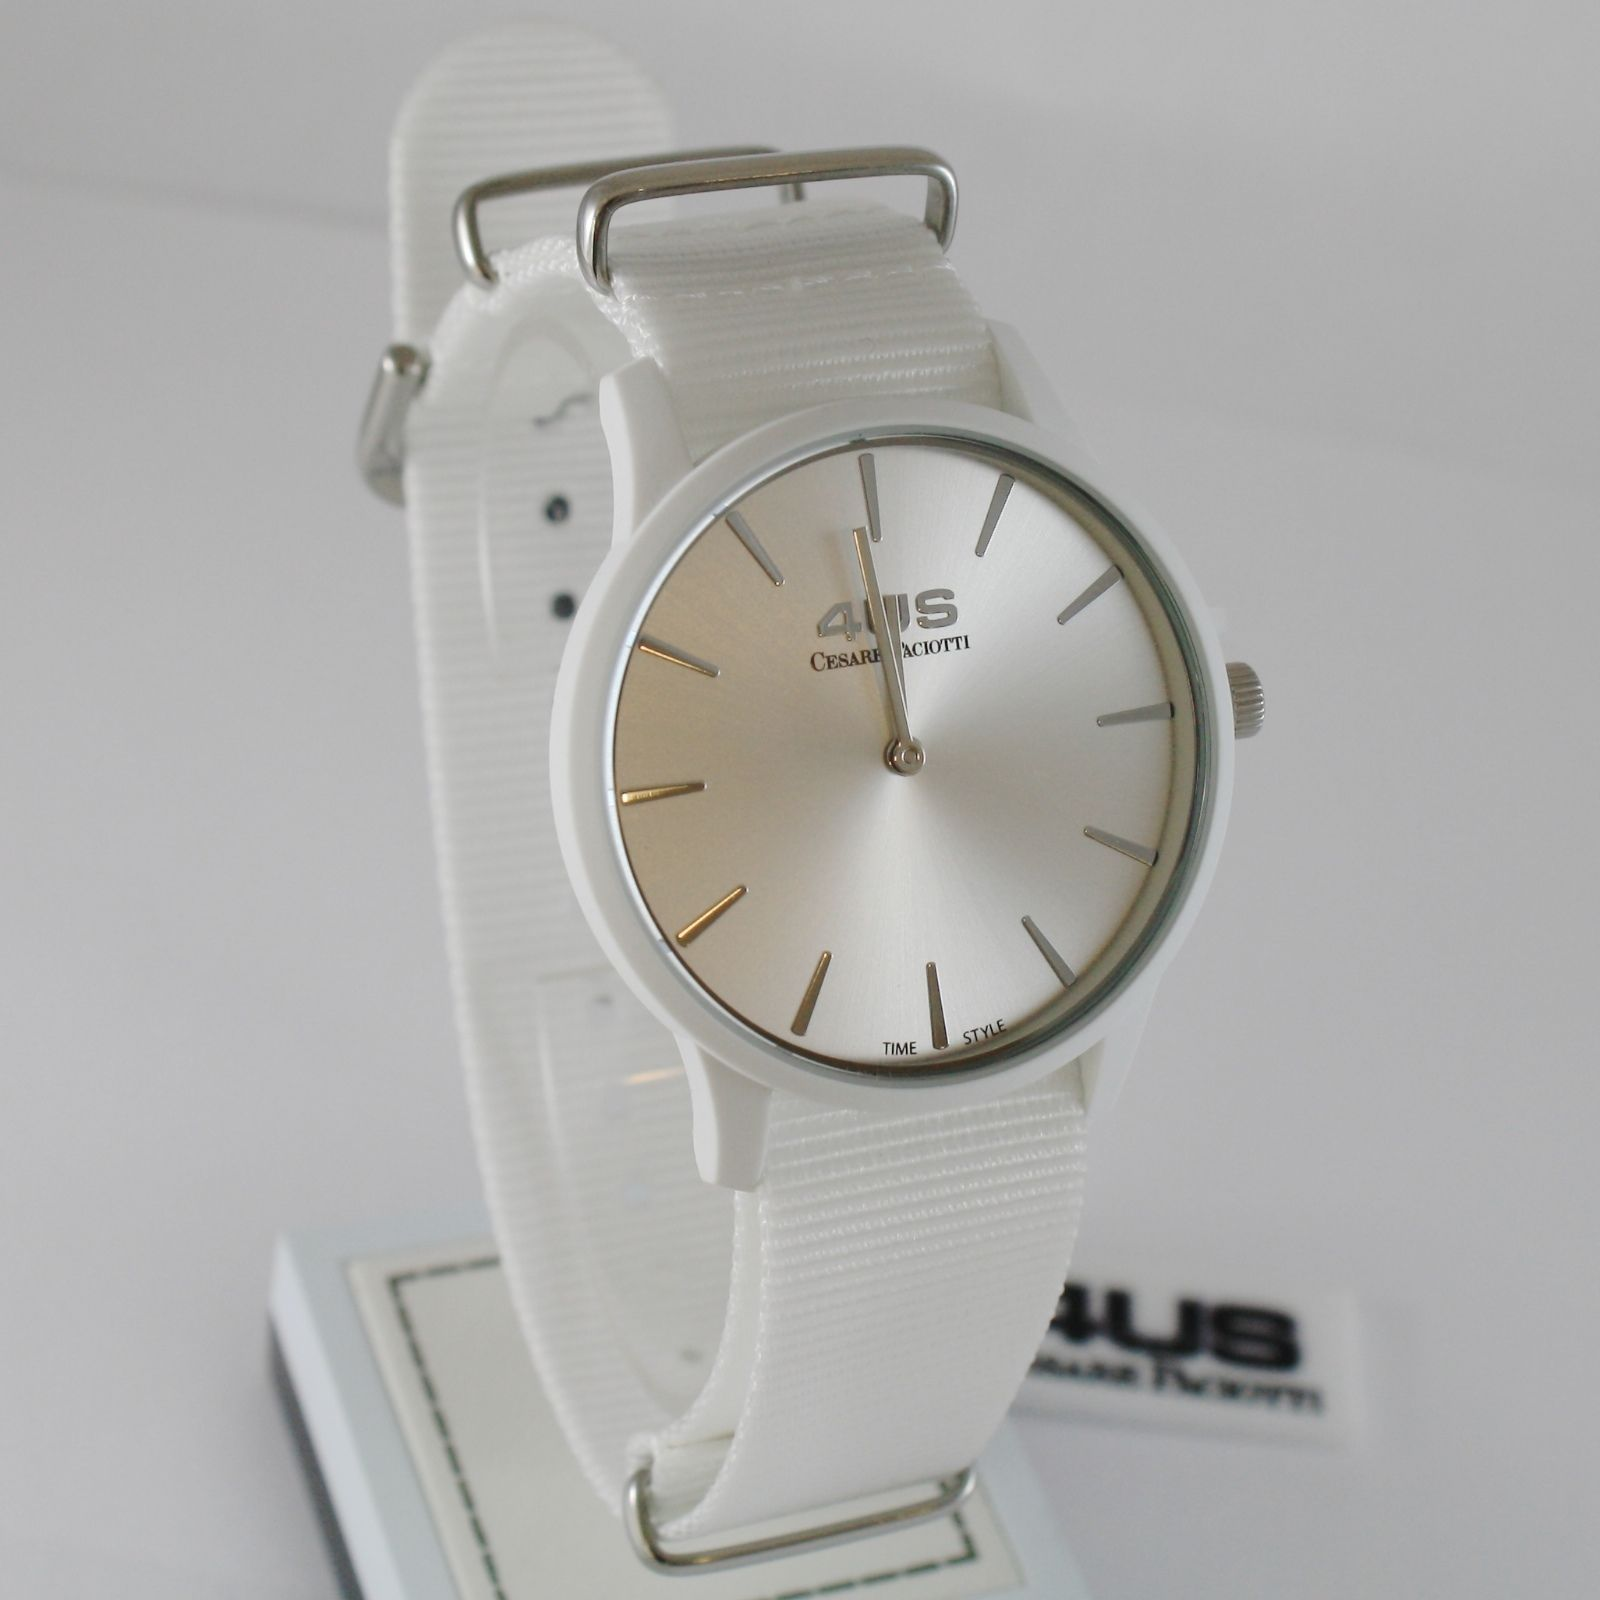 CESARE PACIOTTI 4US WATCH QUARTZ MIYOTA MOVEMENT 40 MM CASE, WHITE FABRIC BAND